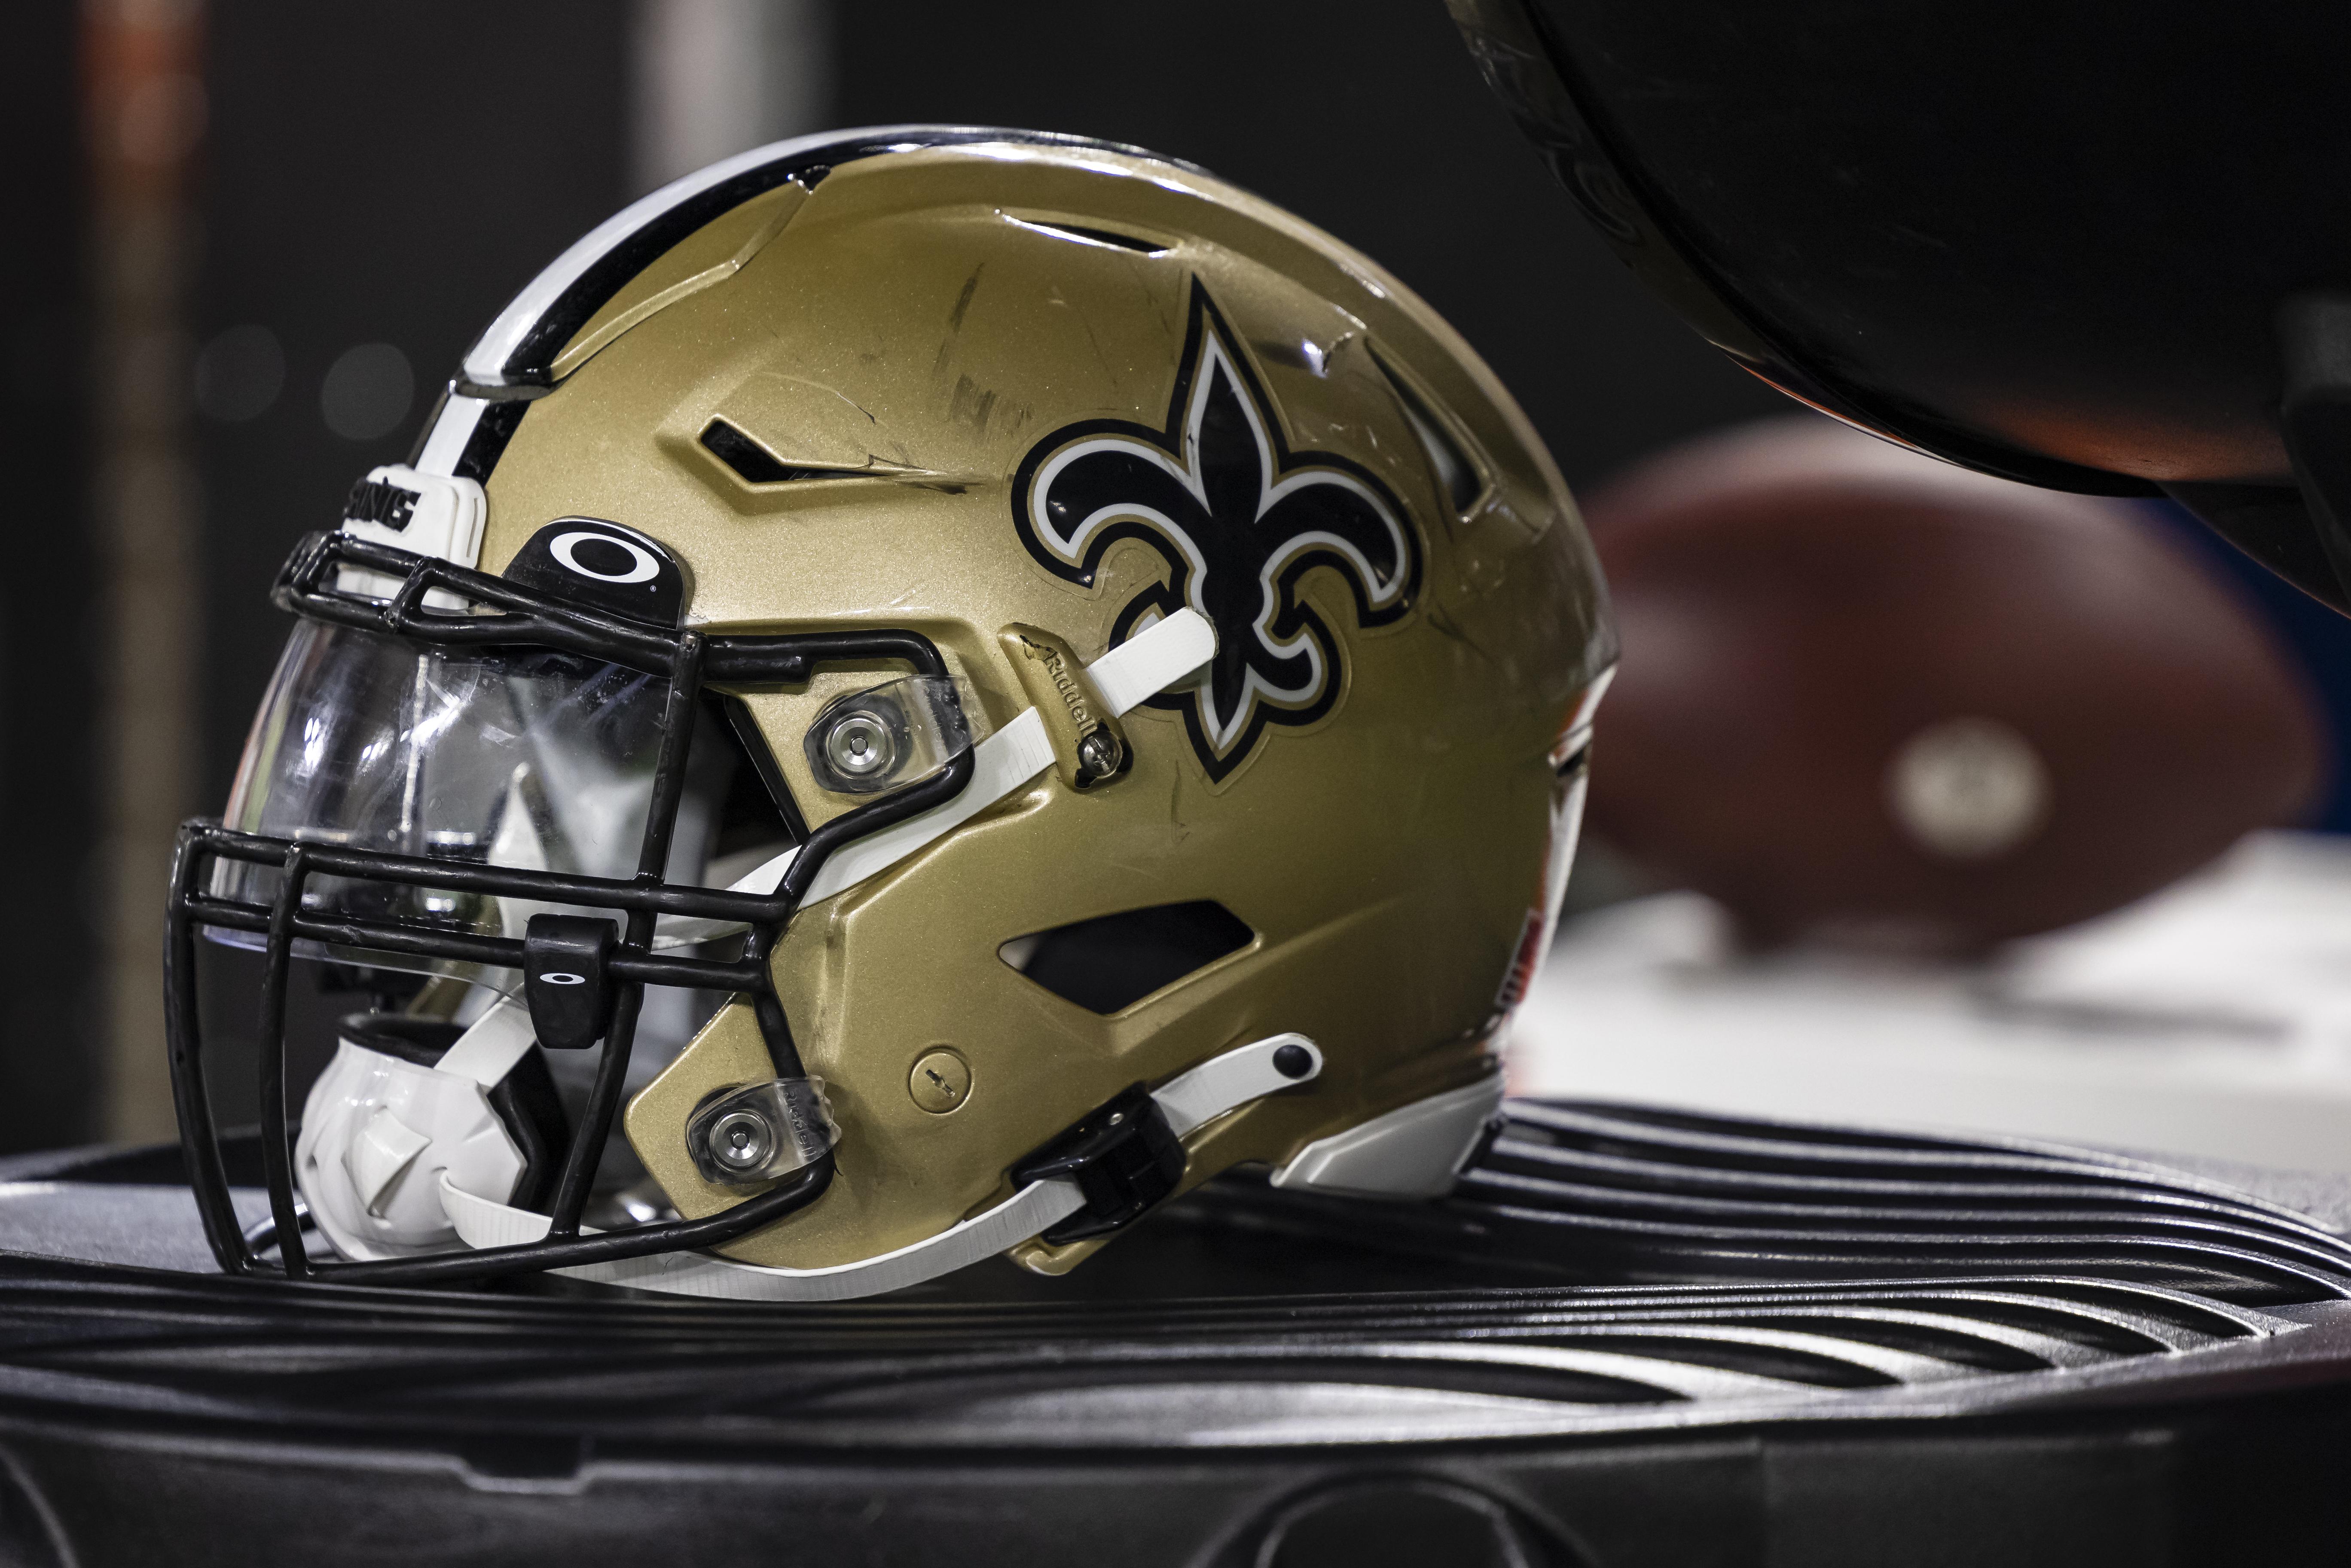 A New Orleans Saints helmet is seen on the sidelines during the second half of a preseason game against the Baltimore Ravens at M&T Bank Stadium on August 14, 2021 in Baltimore, Maryland.